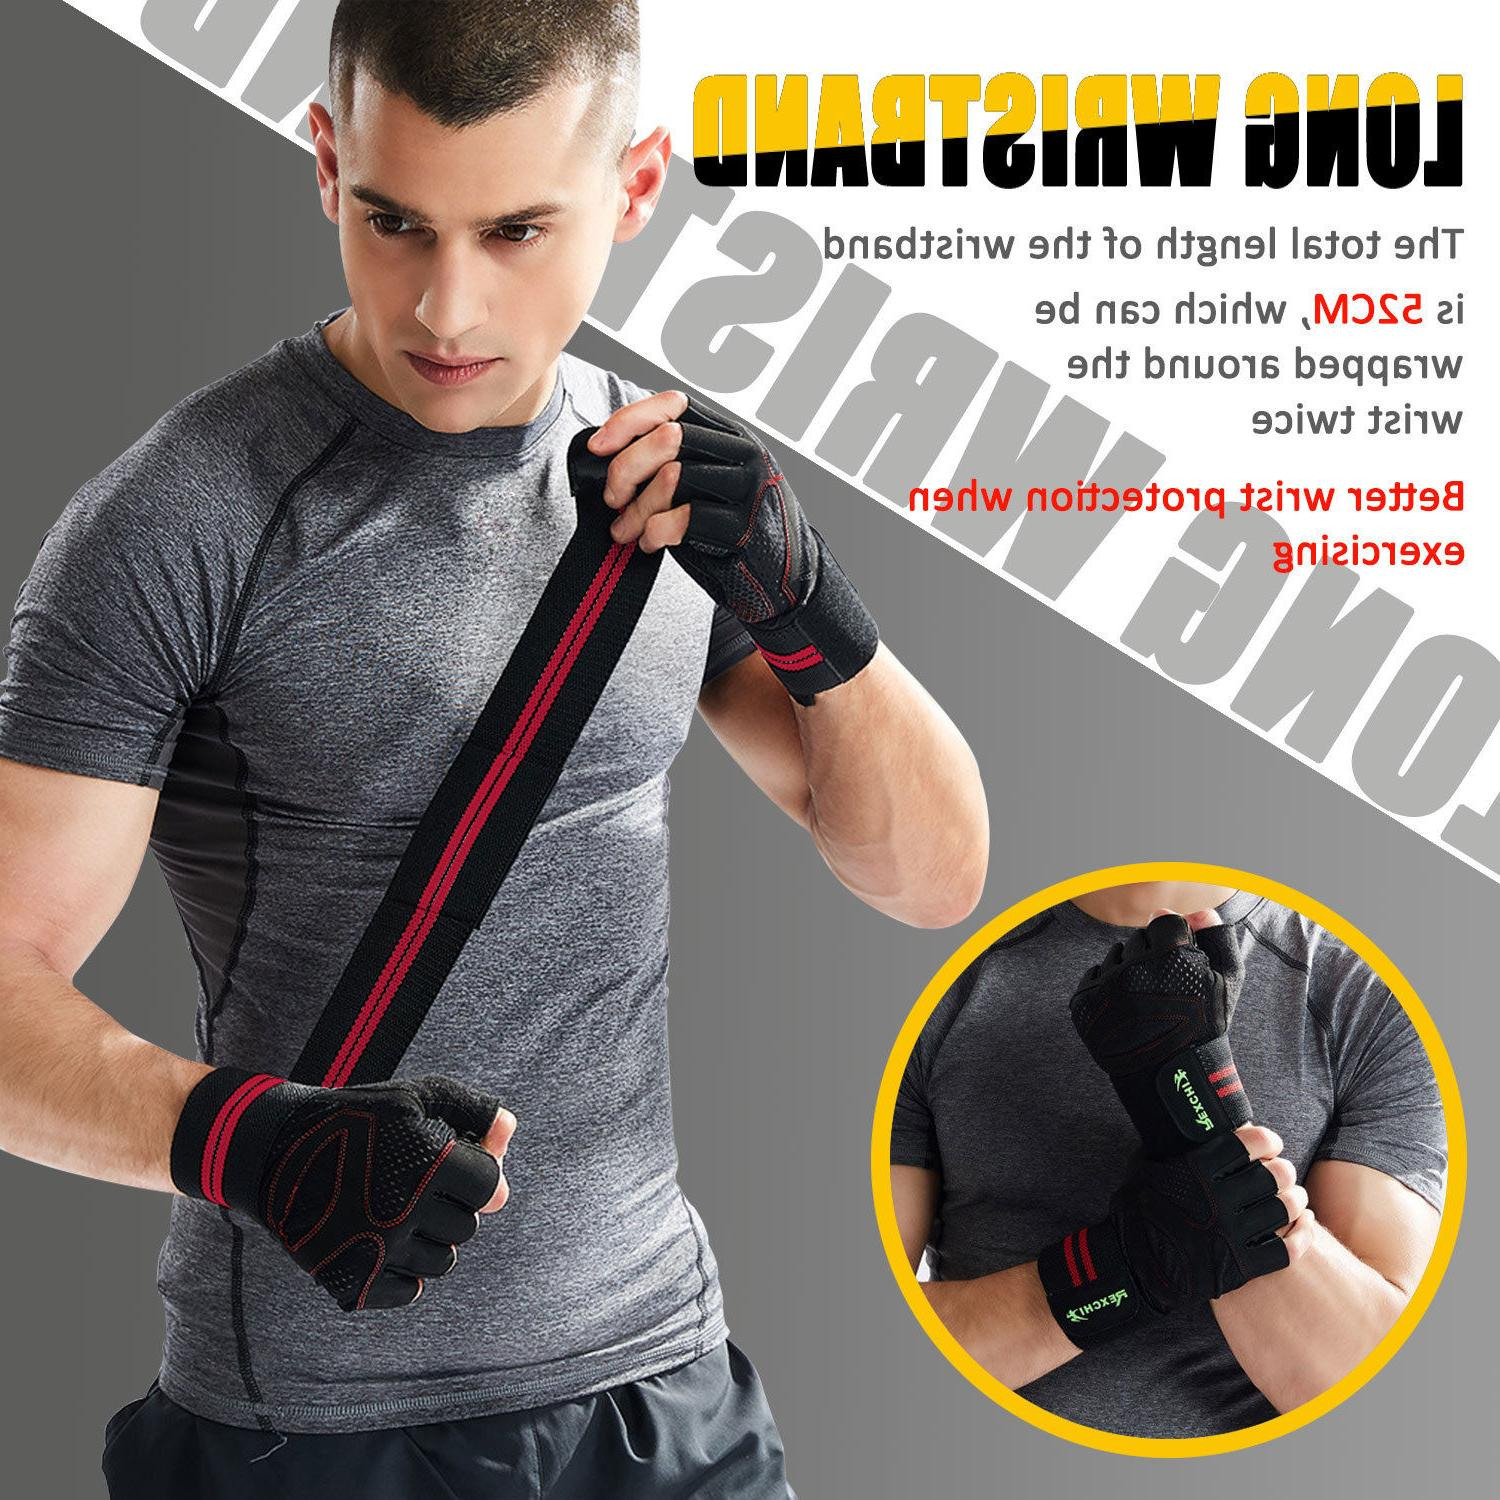 Wrist Support Gloves Weight